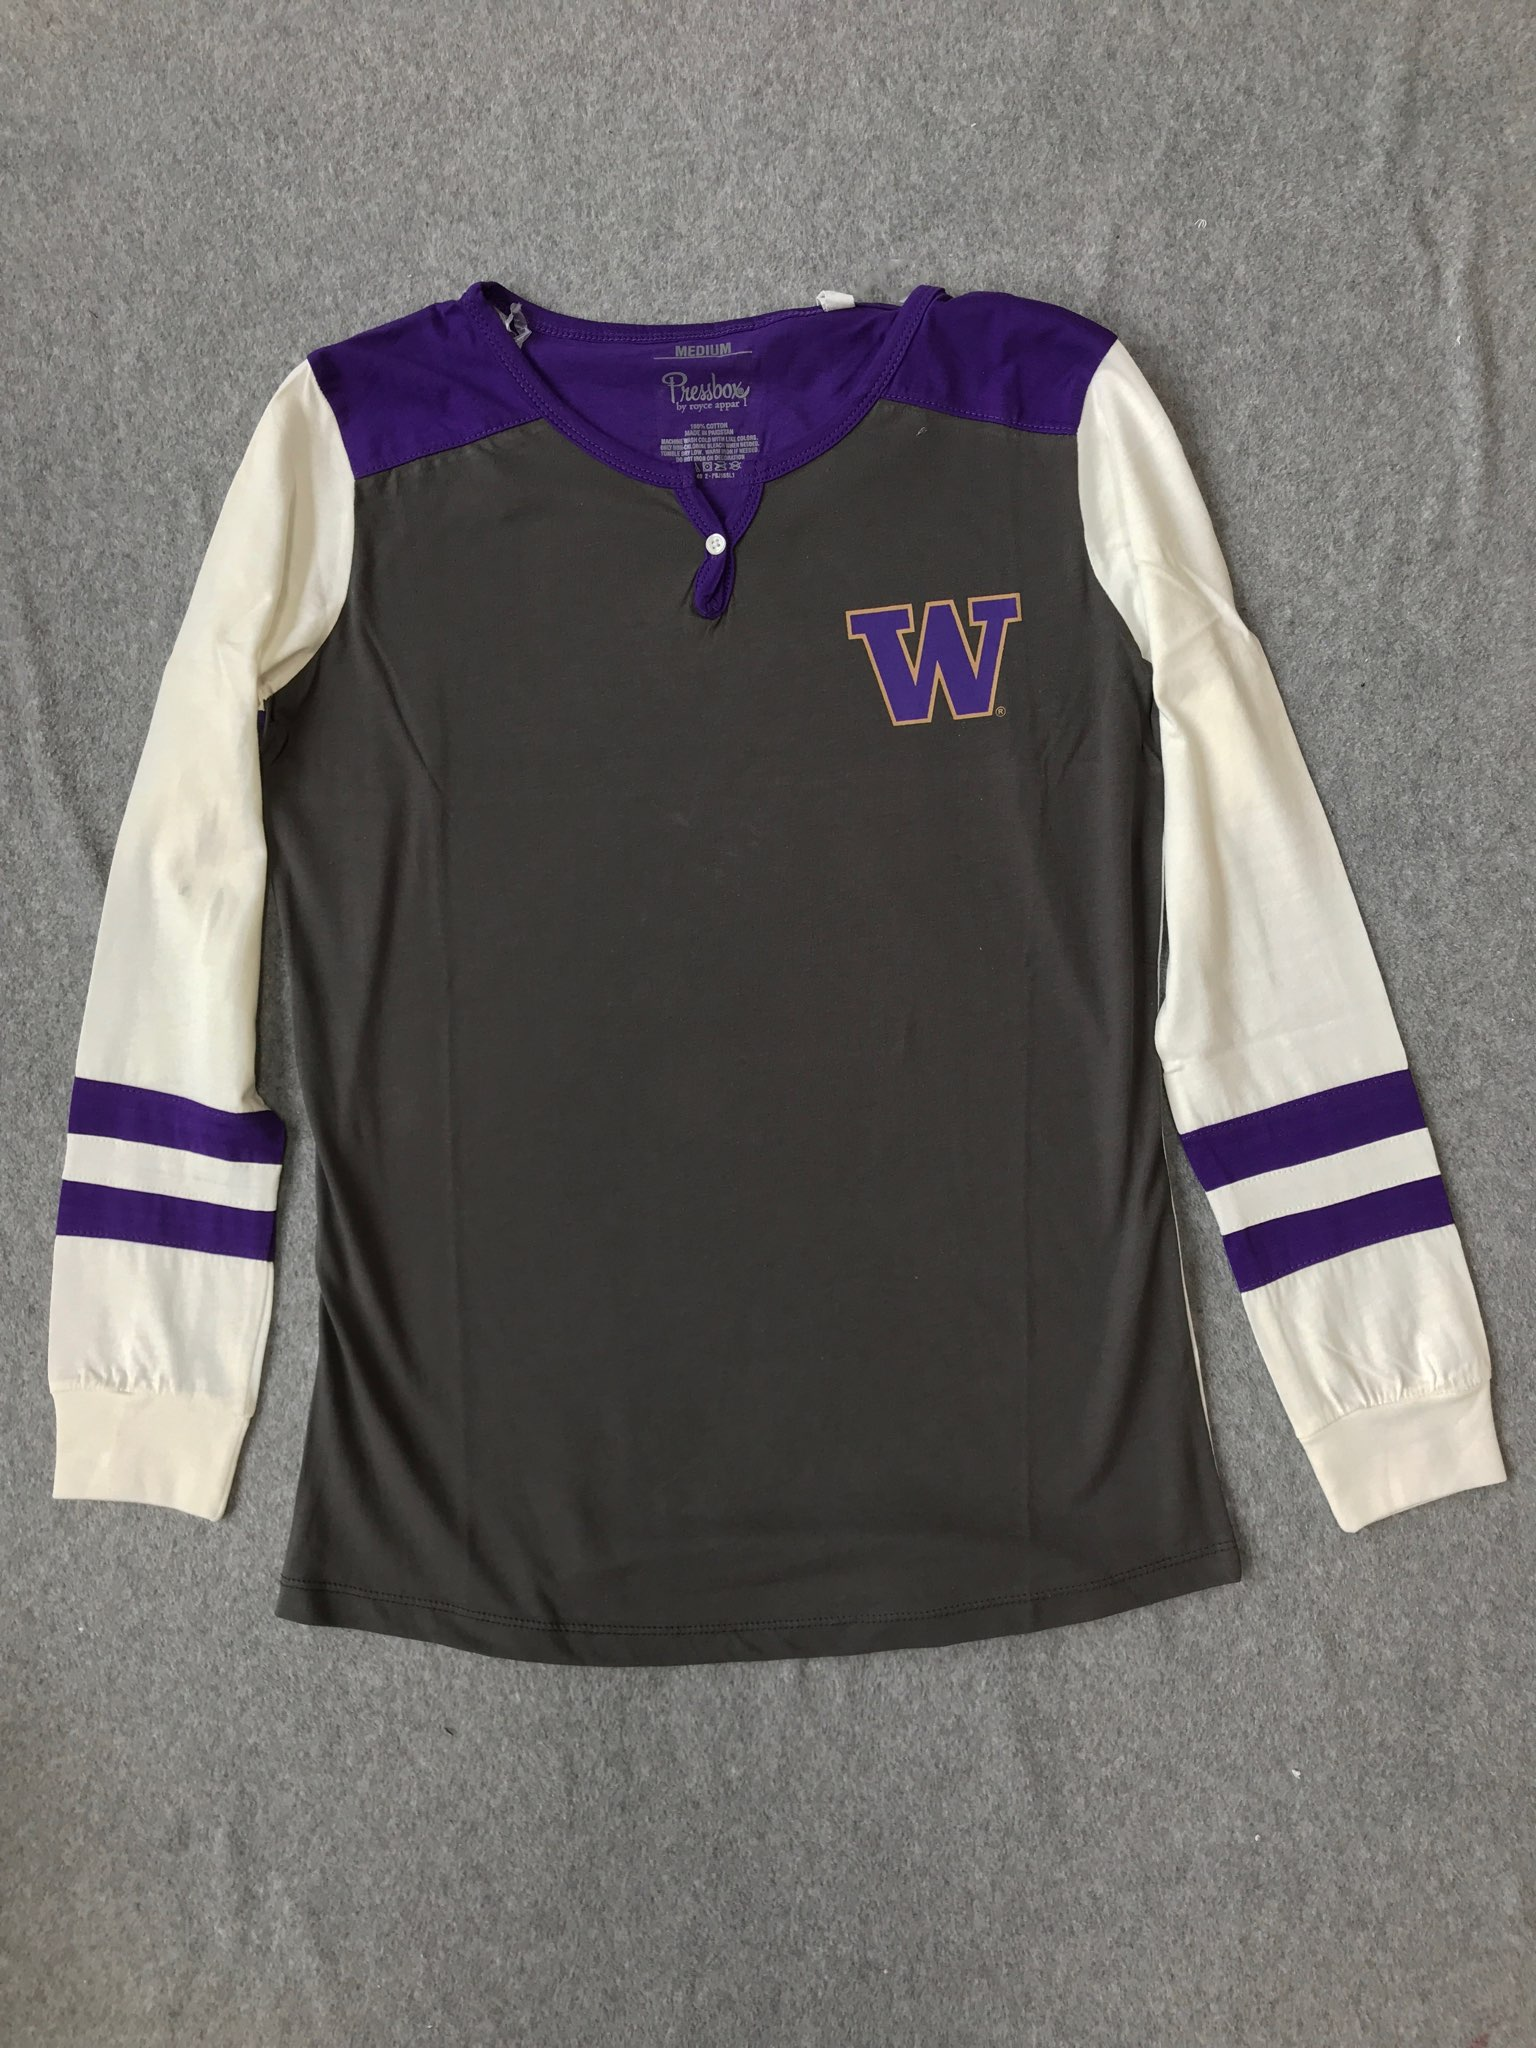 UW Ladies Baseball Tee longsleeve Size Medium